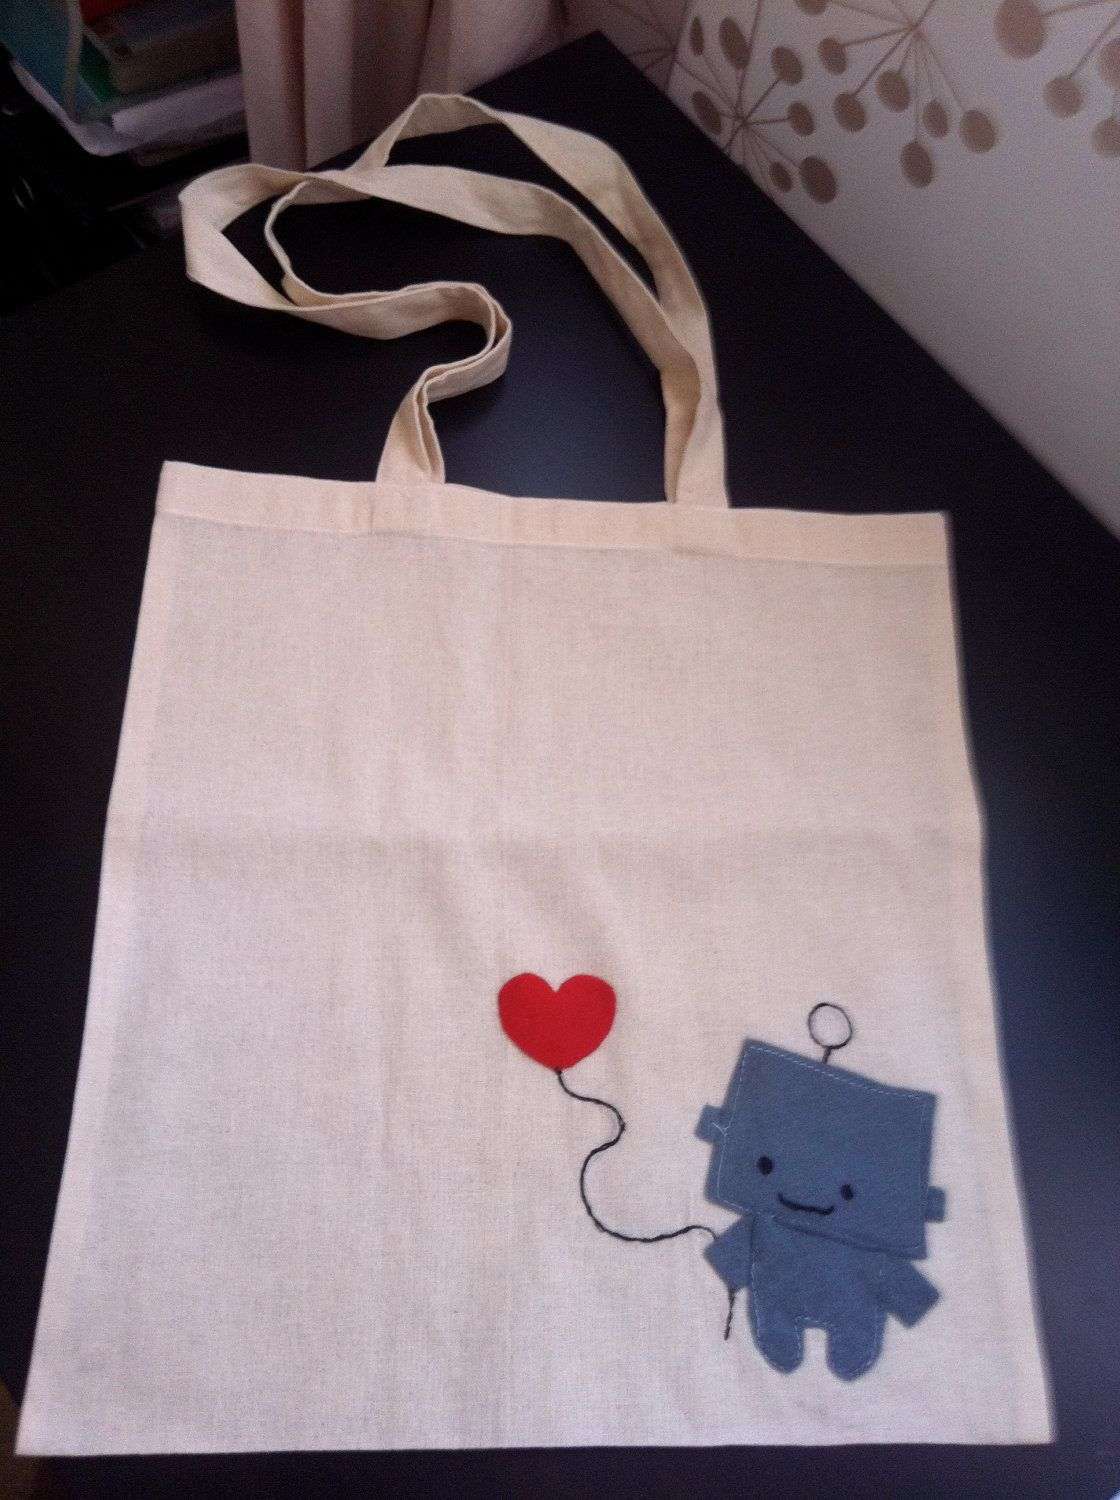 Cute Robot on canvas tote bag purse by KawaiiTotes ~ I have a thing fir cute happy robots! 